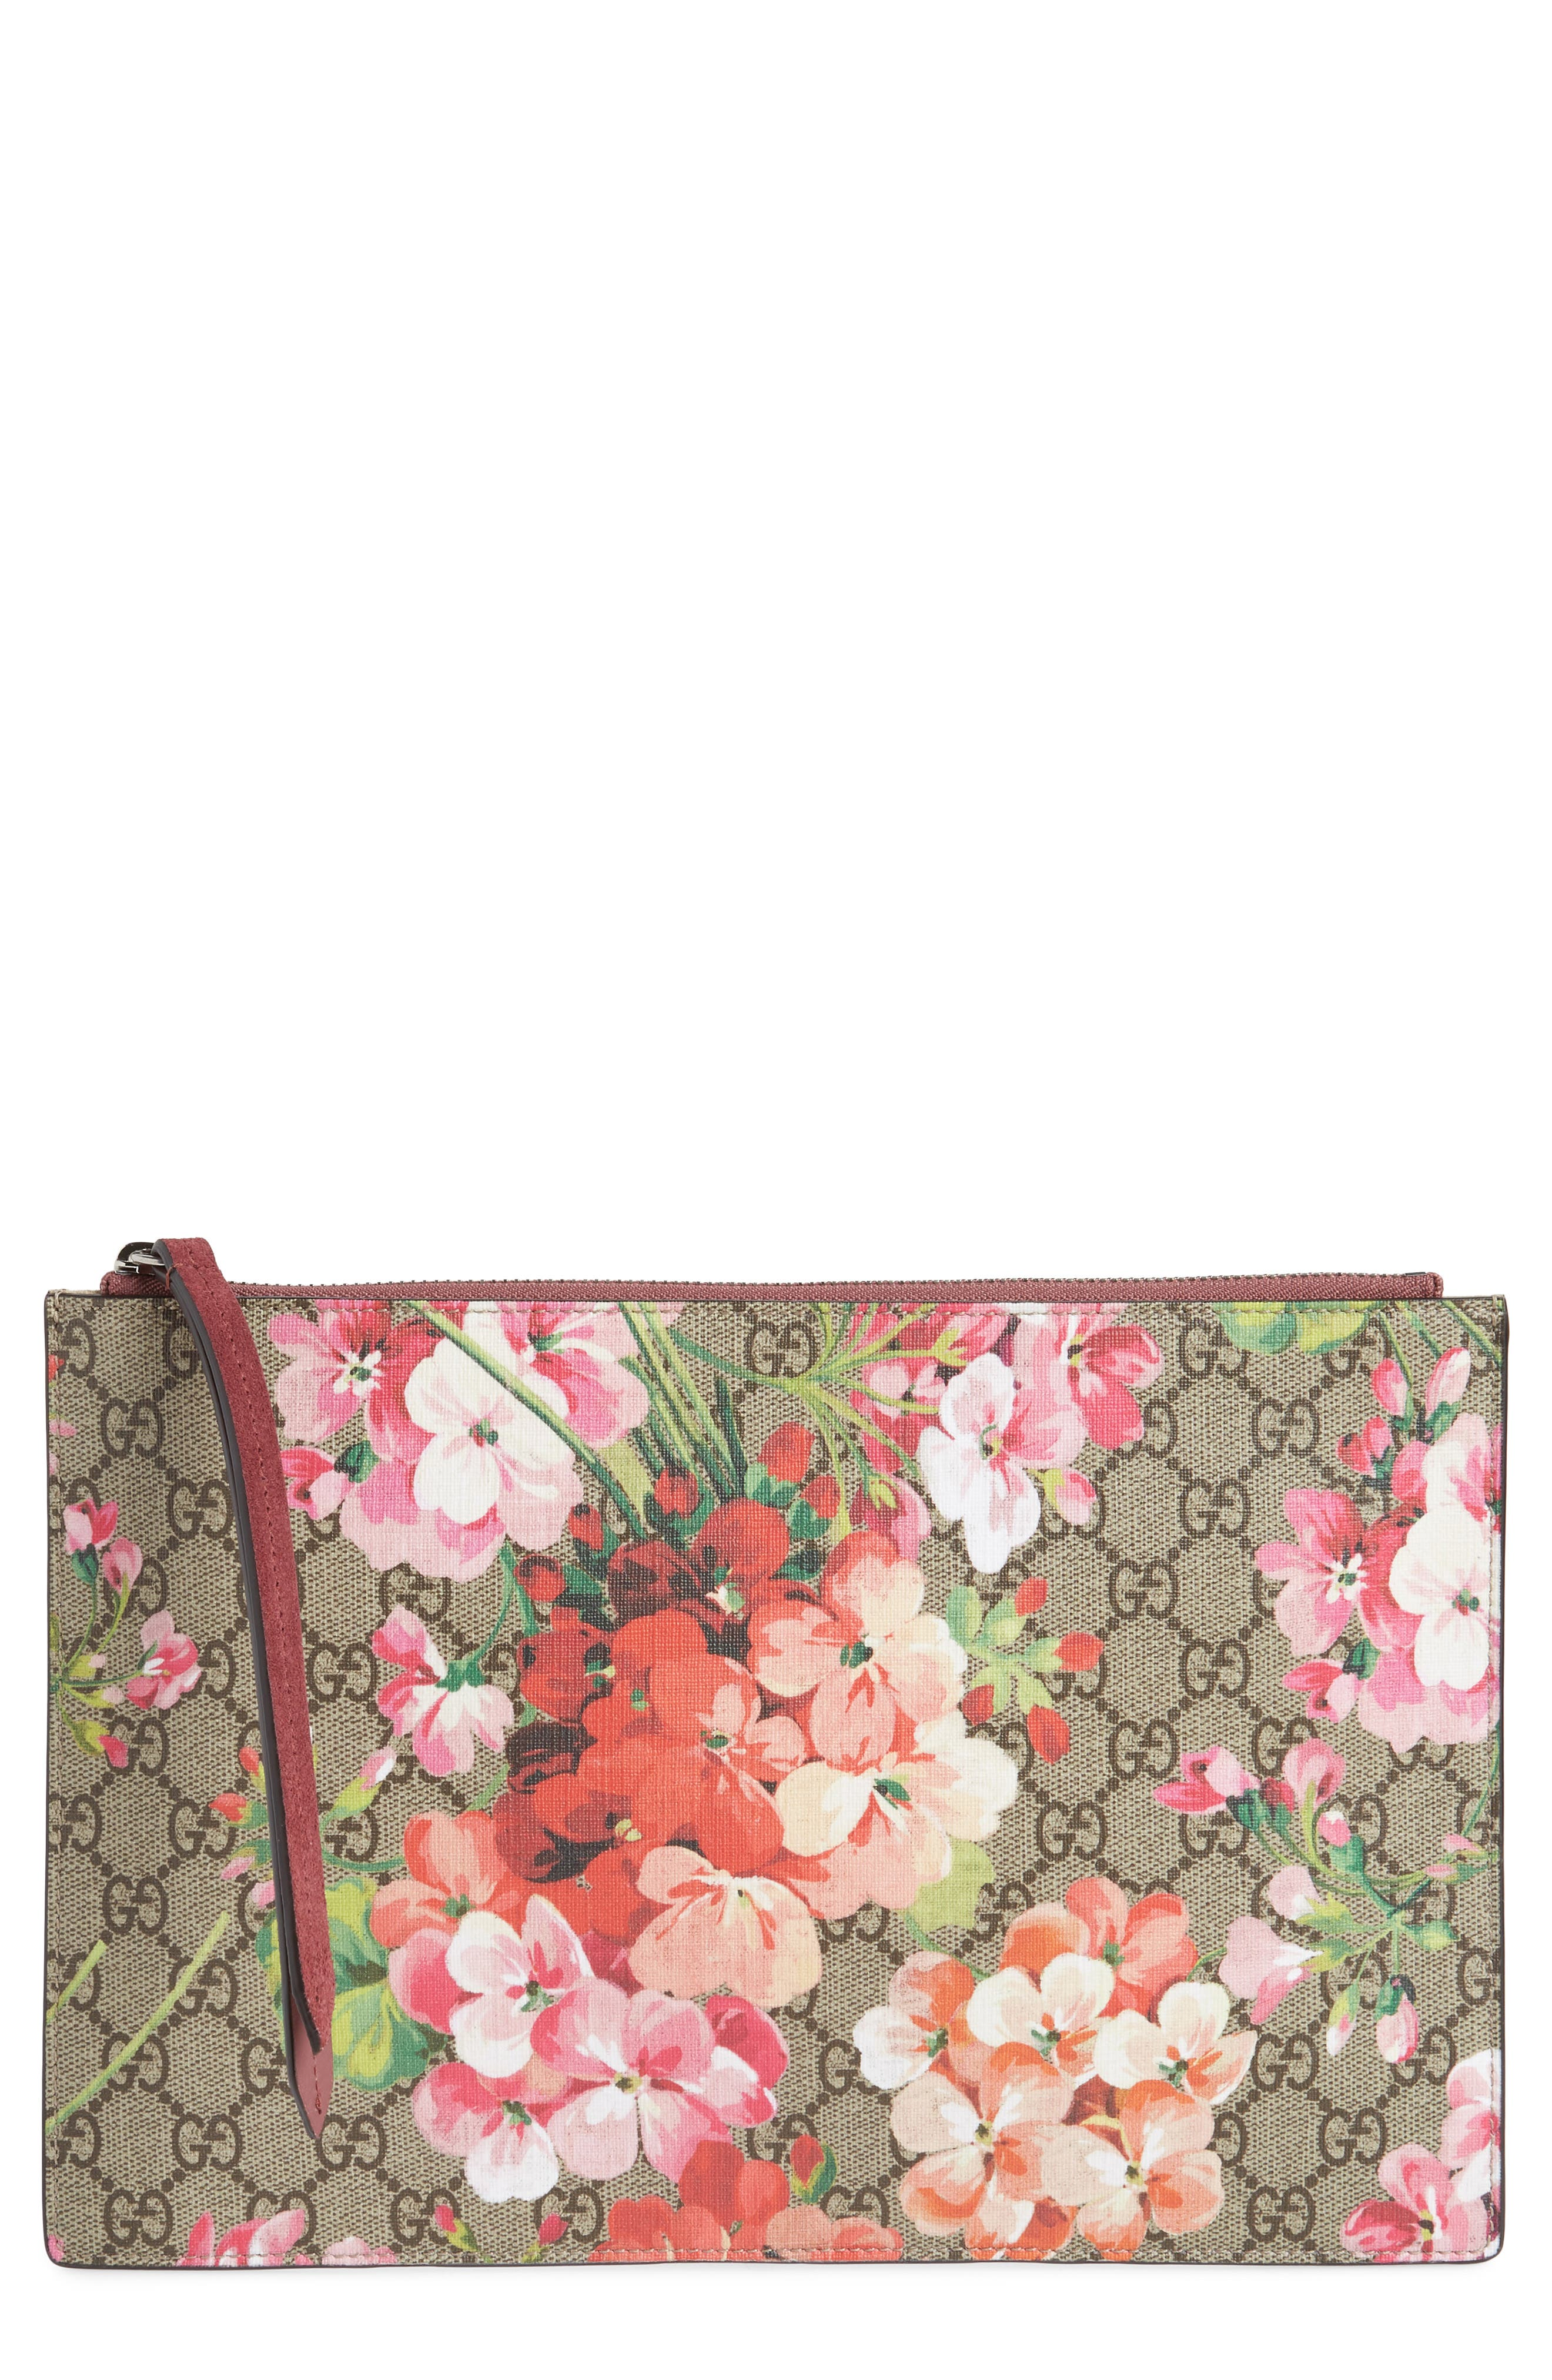 GG Blooms Large Canvas & Suede Pouch,                         Main,                         color, 250